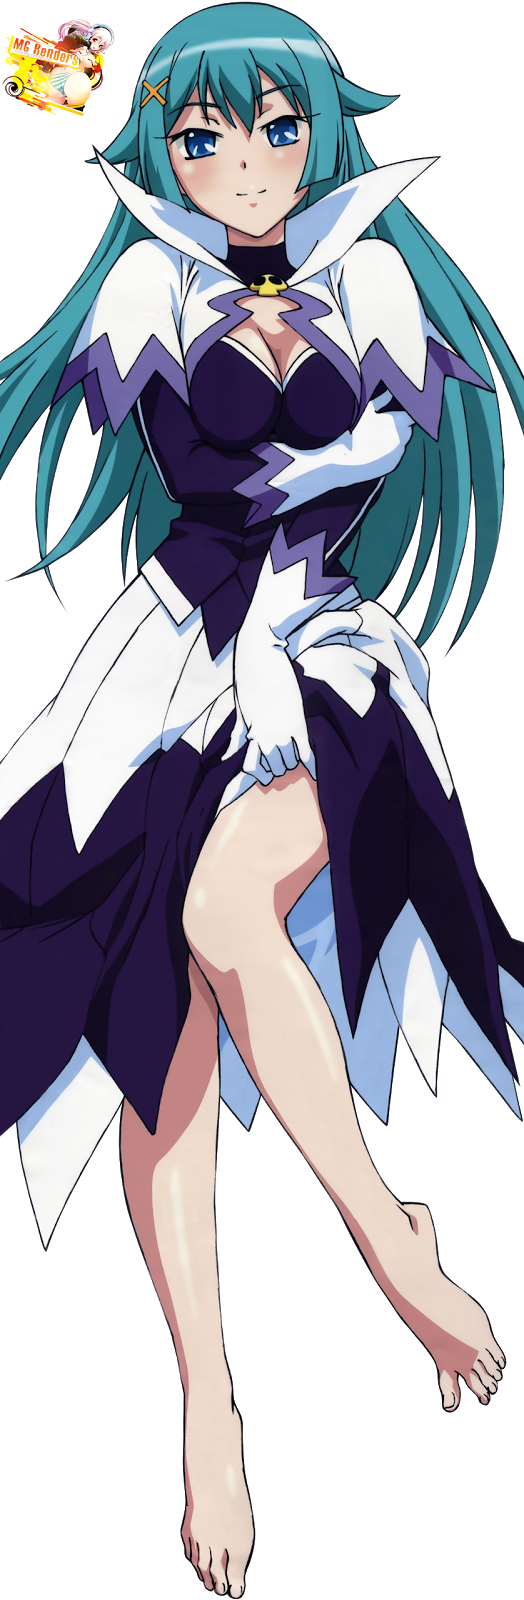 Tags: Anime, Render,  Dress,  Feet,  Kaitou Tenshi Twin Angel,  Skirt,  Violet Tesla, PNG, Image, Picture